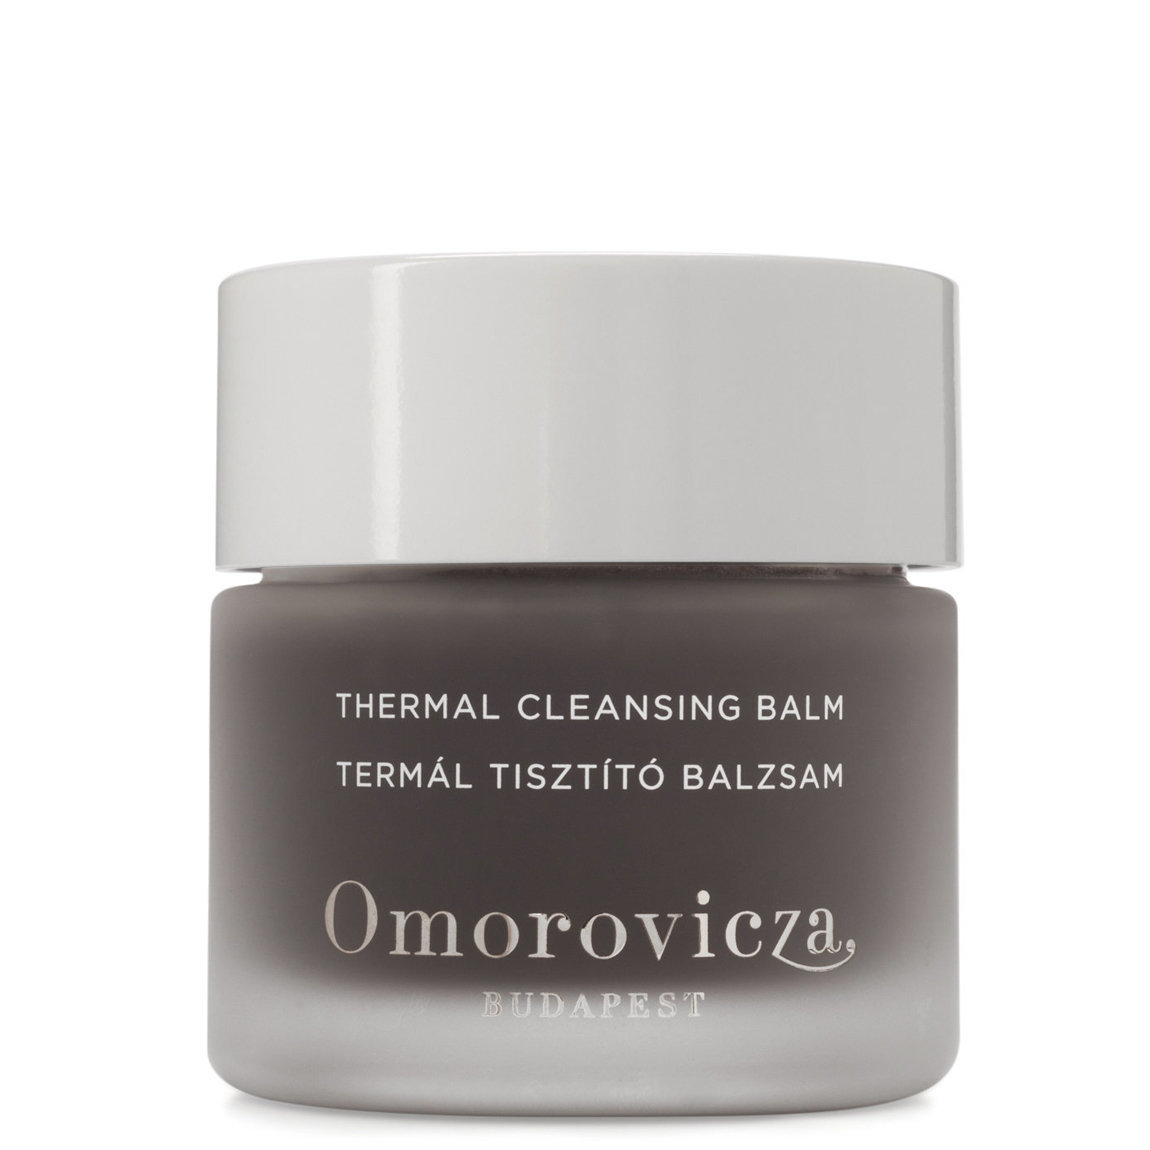 Omorovicza Thermal Cleansing Balm 15 ml product smear.